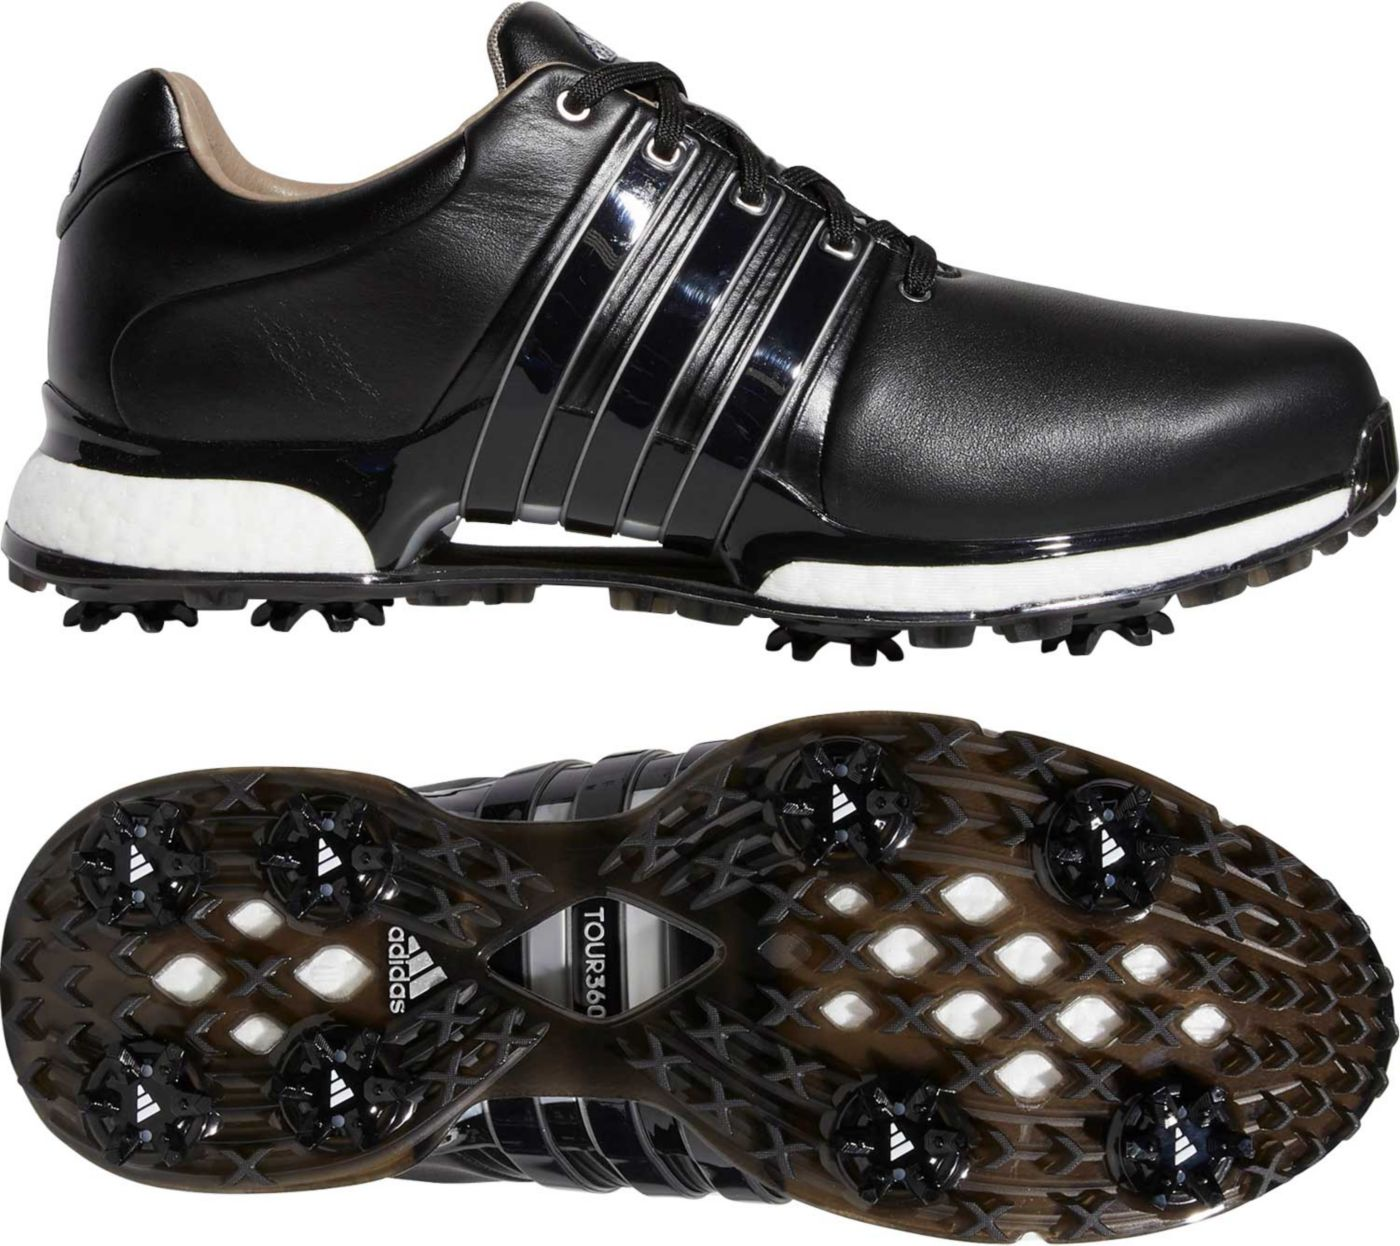 adidas Men's TOUR360 XT Golf Shoes